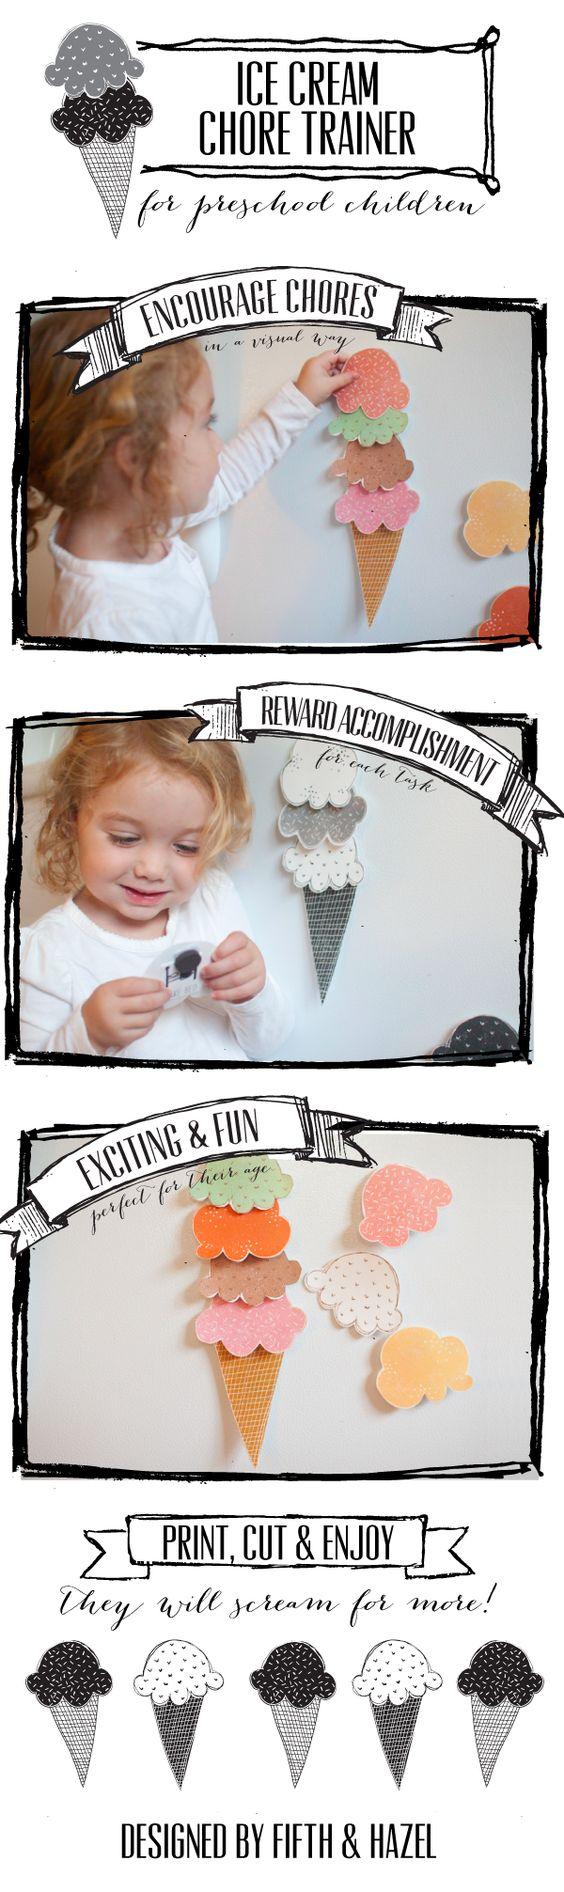 Super fun printable ice cream chore chart for the little guys :)